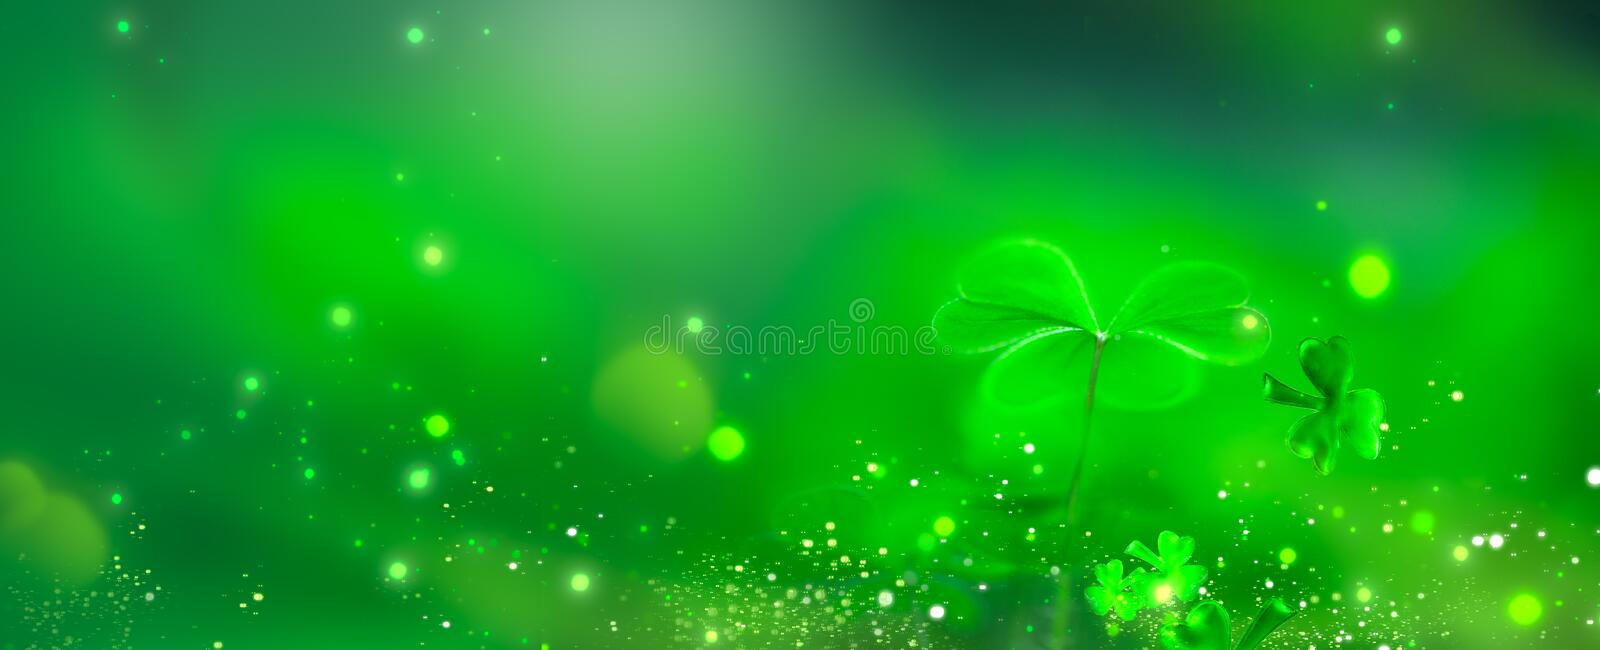 St. Patrick`s Day green background decorated with shamrock leaves. Patrick Day pub party celebrating. Abstract Border art design royalty free stock photography